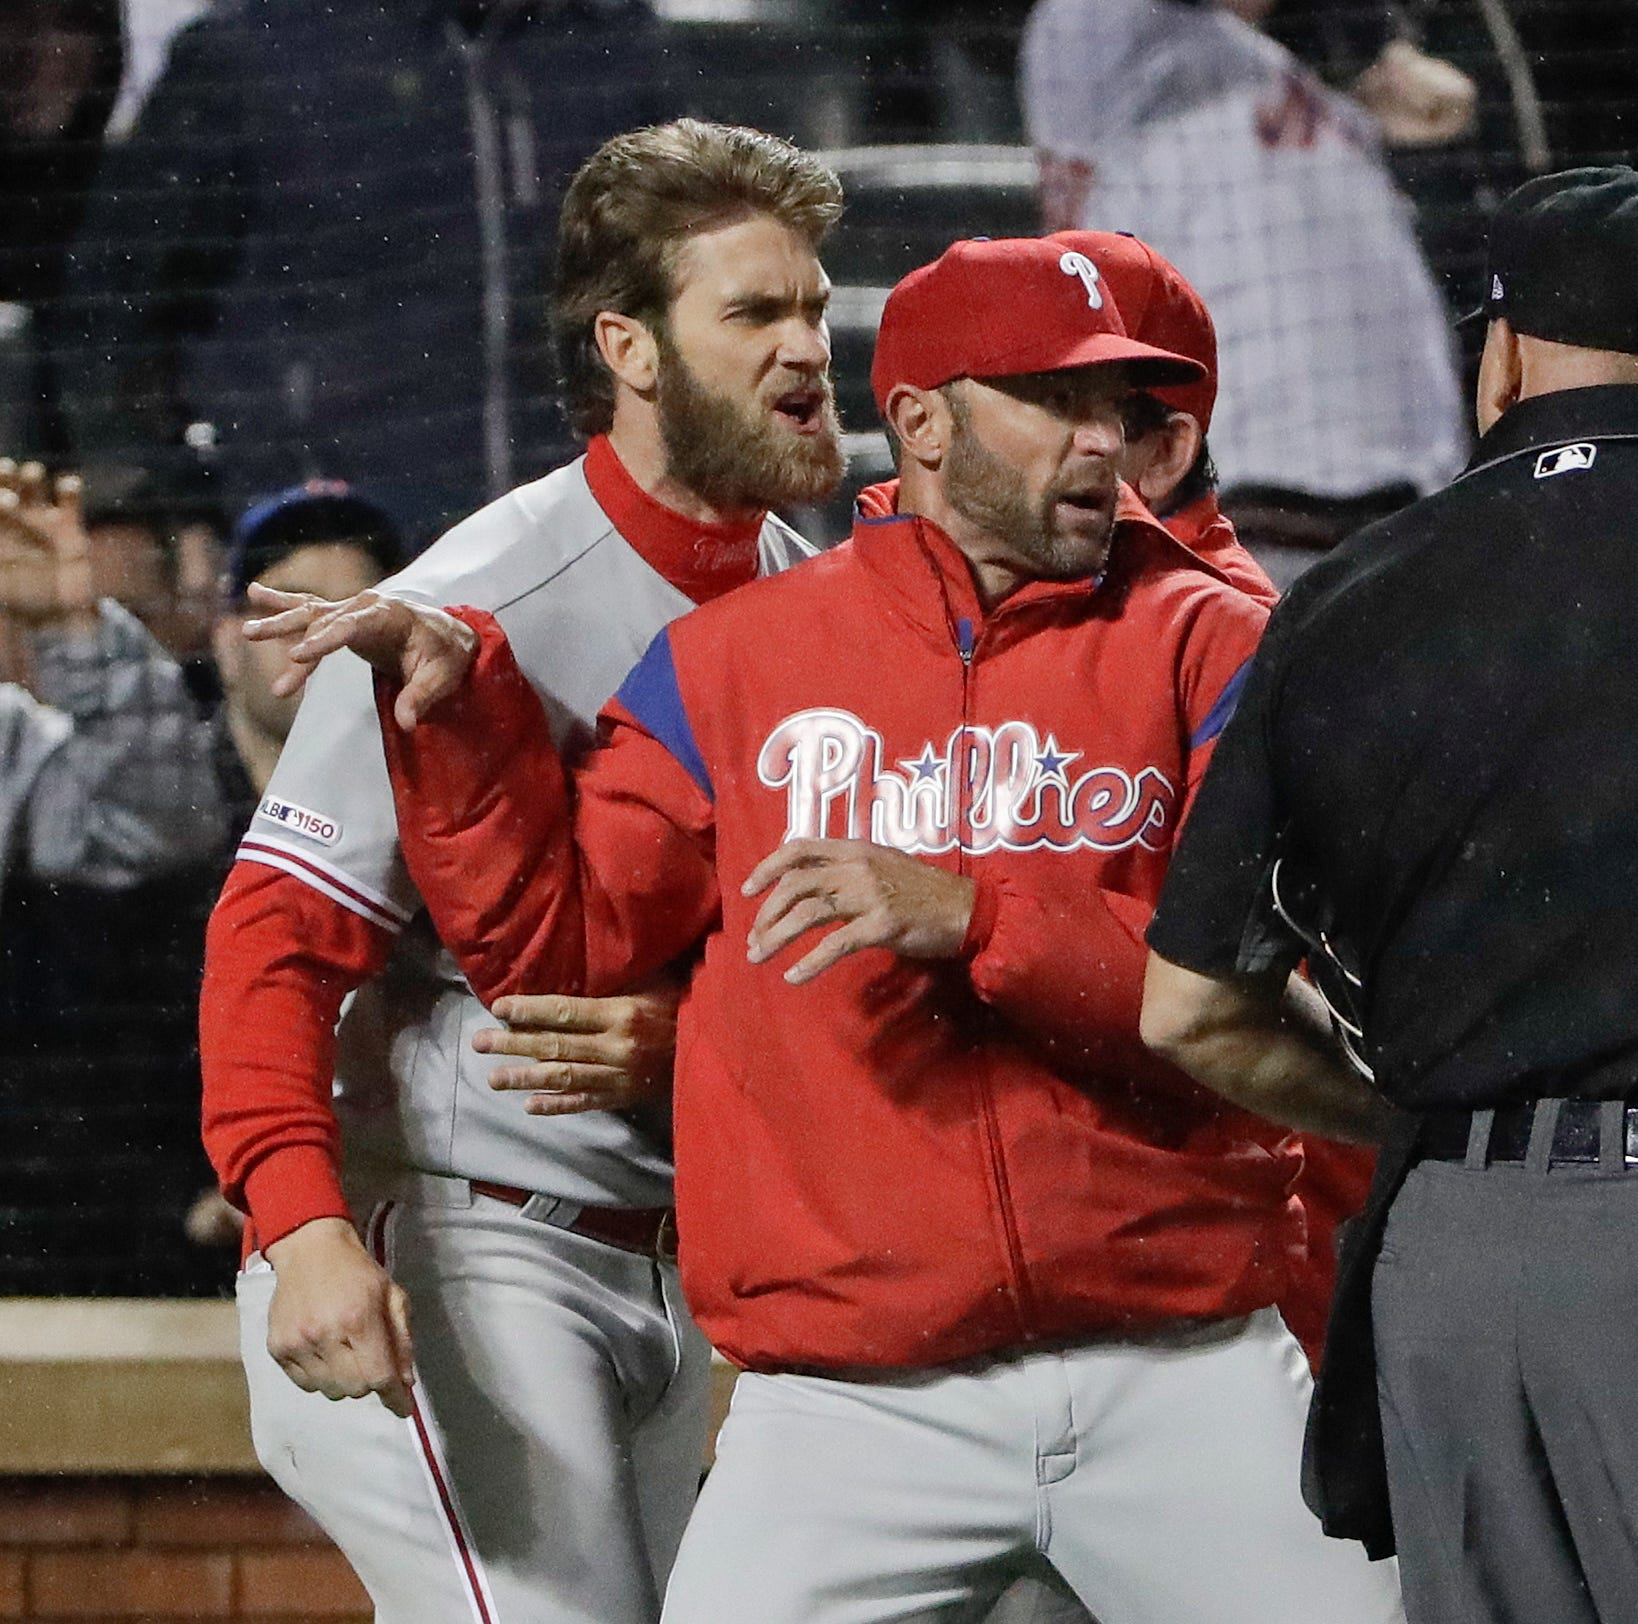 Bryce Harper ejected after tantrum in Mets-Phillies game